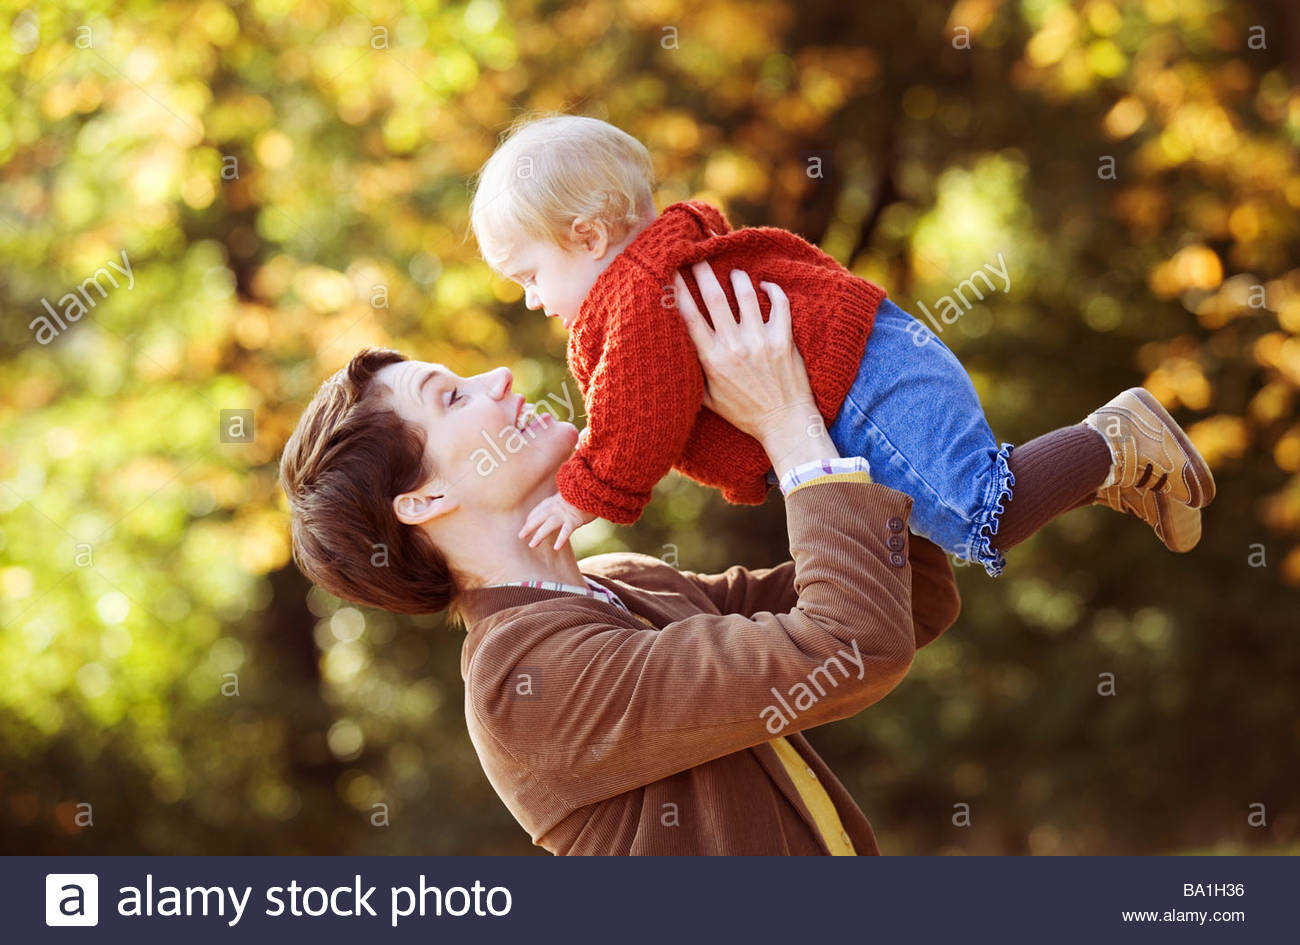 A young mother lifting her baby in the air playfully - Stock Image